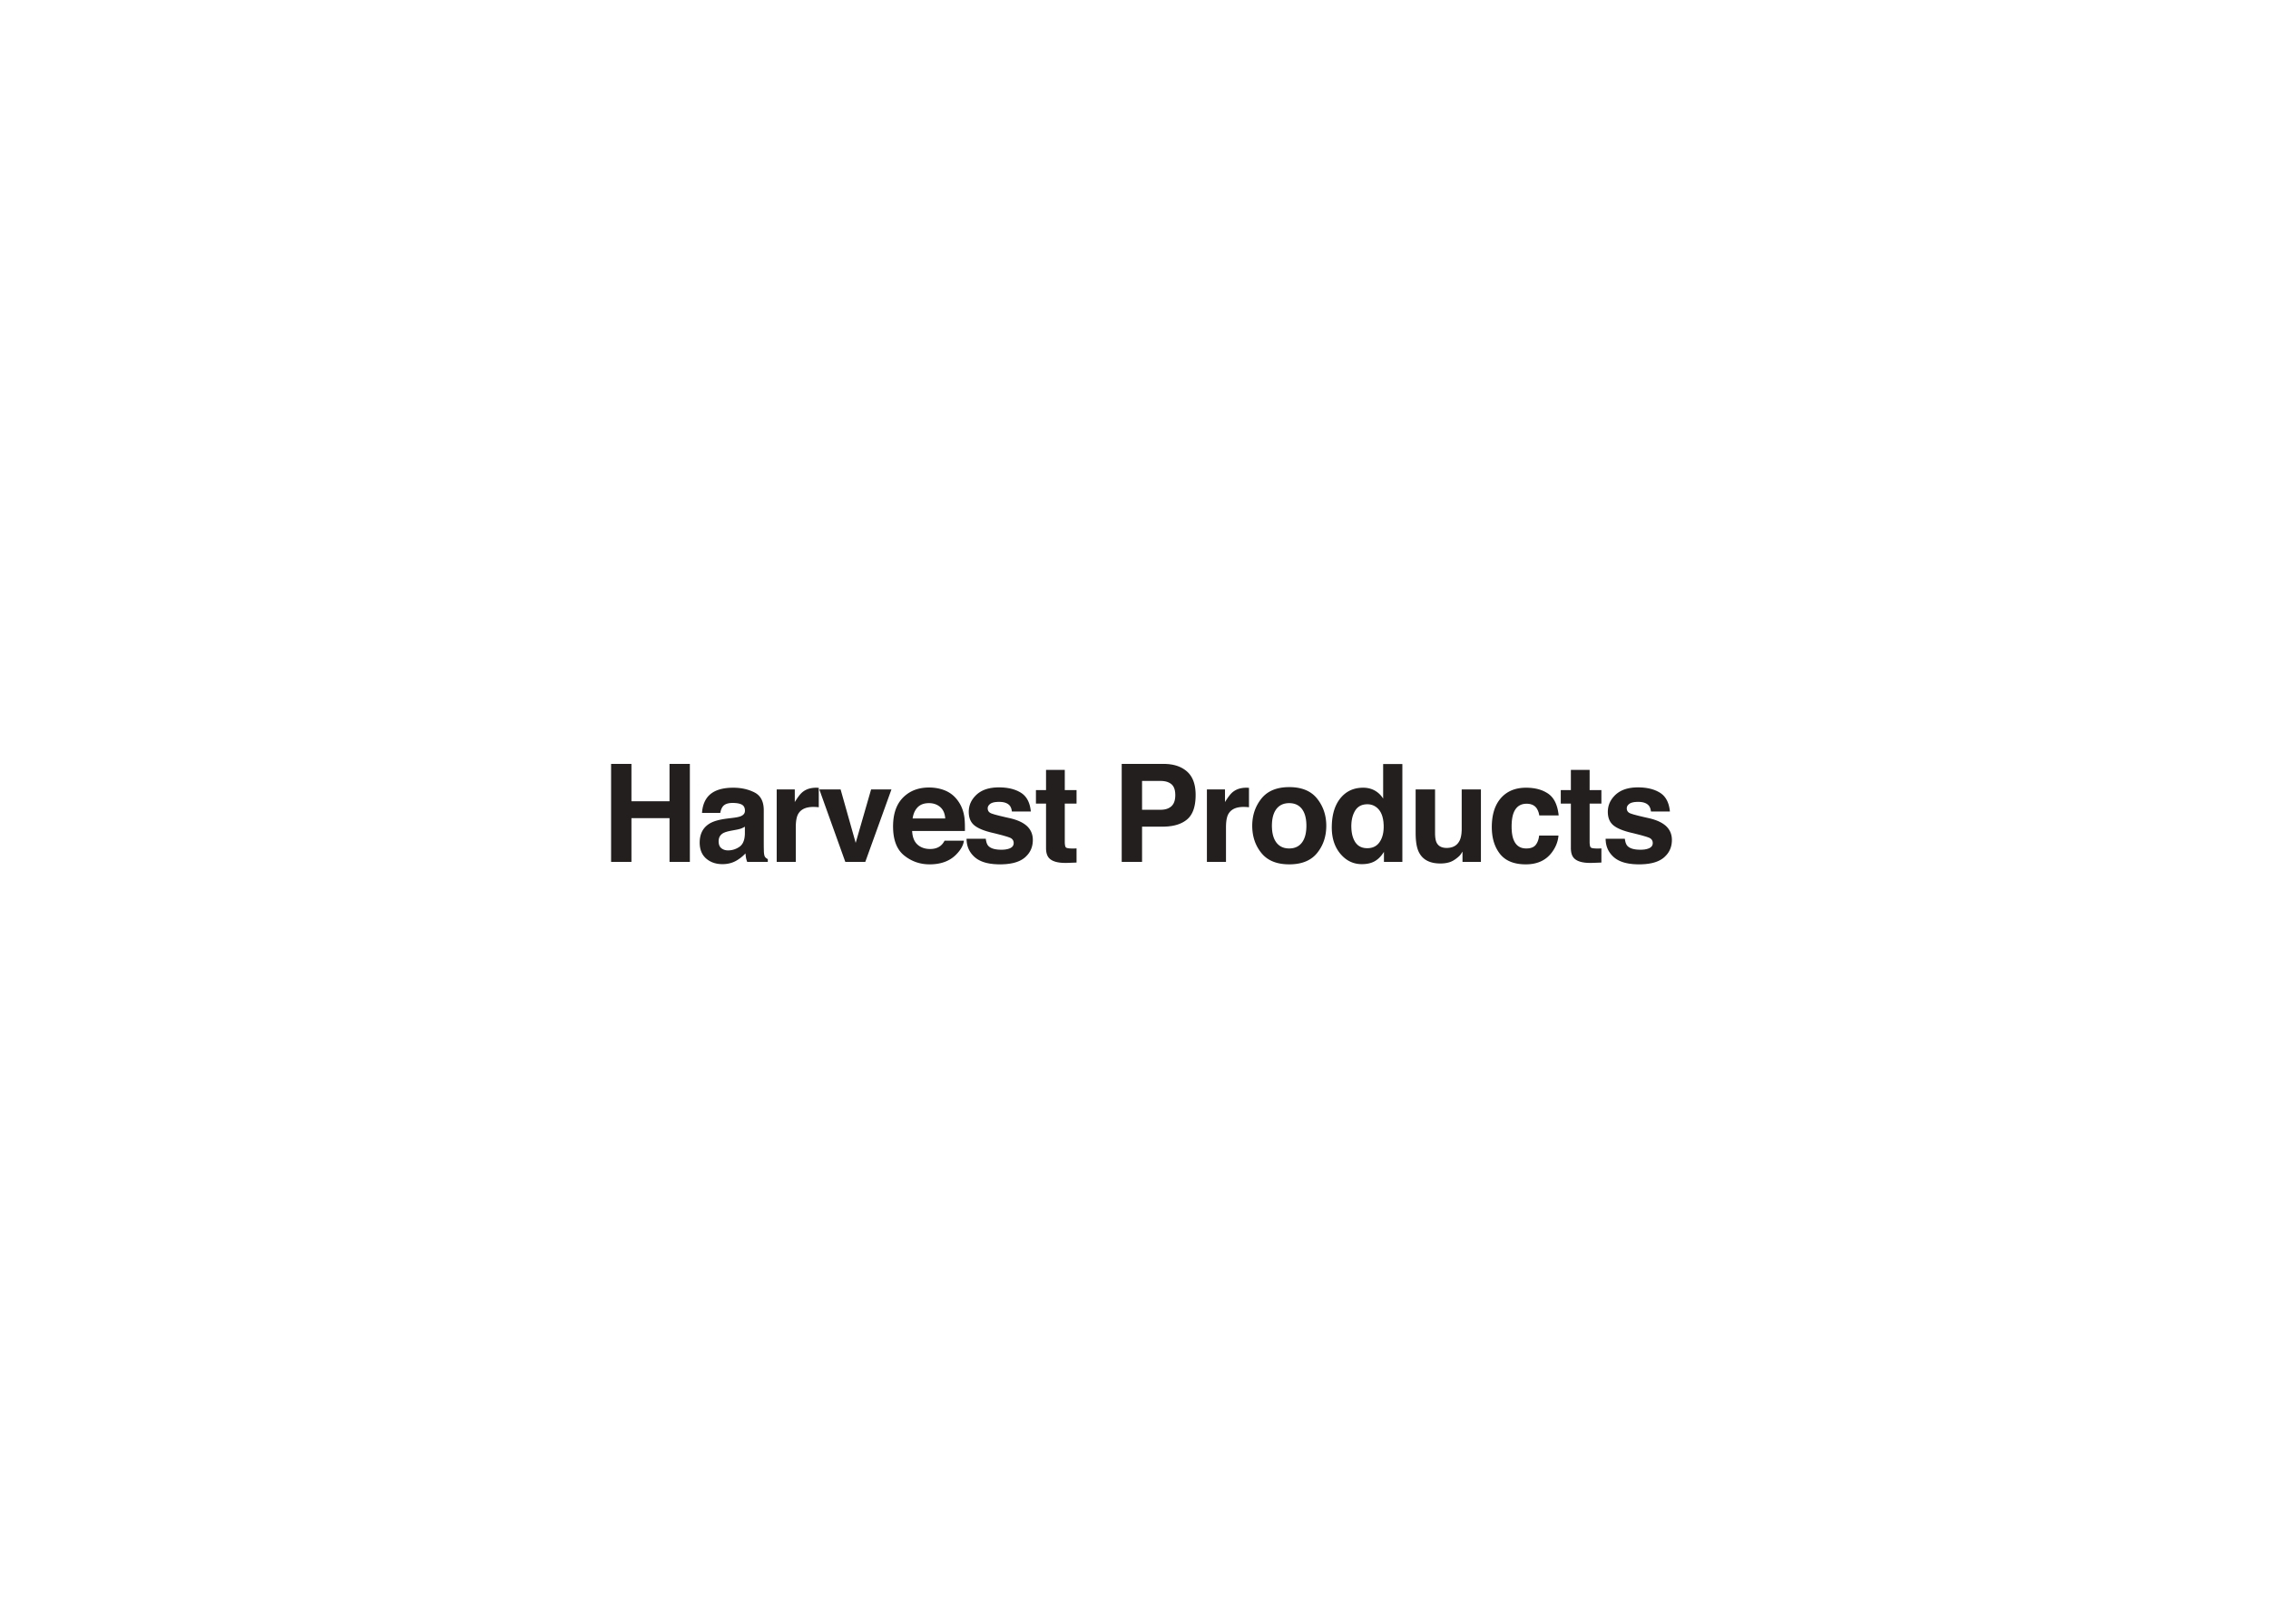 Harvest Products